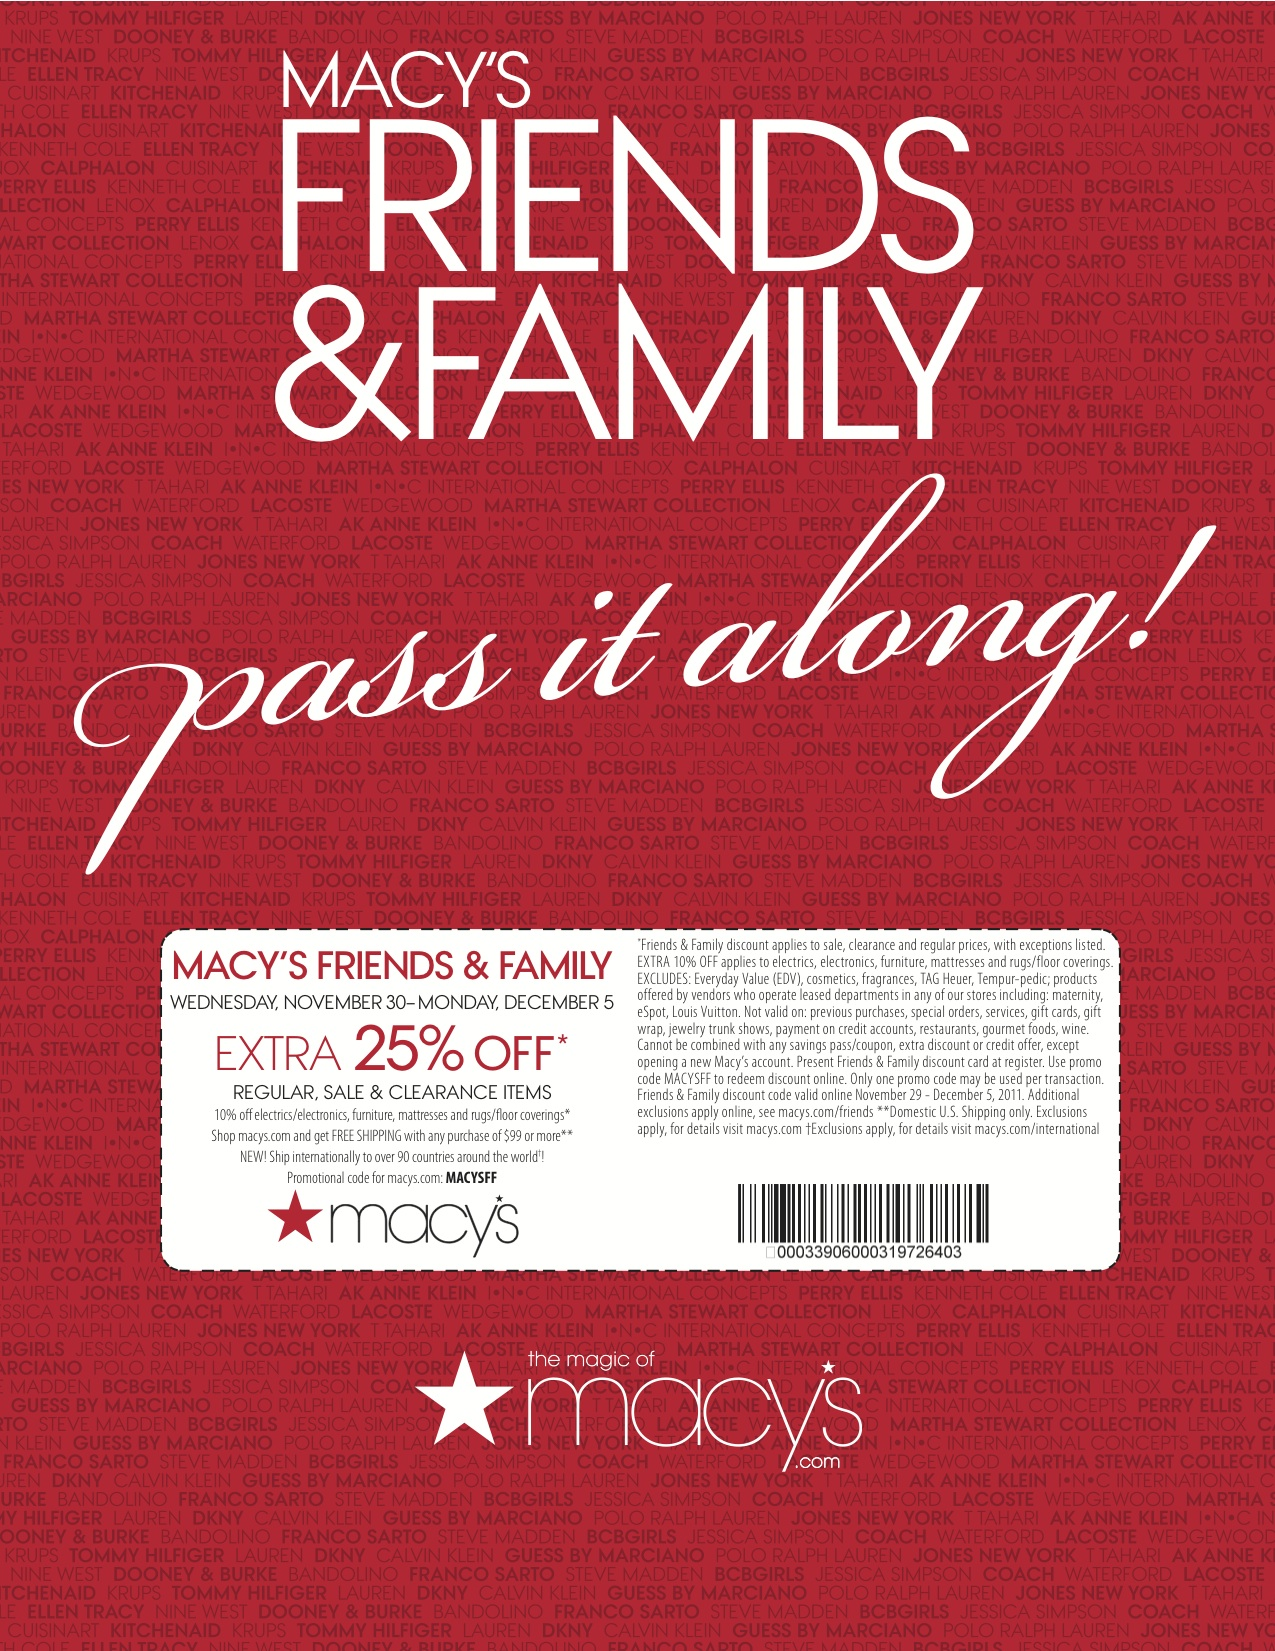 Macys online coupon codes